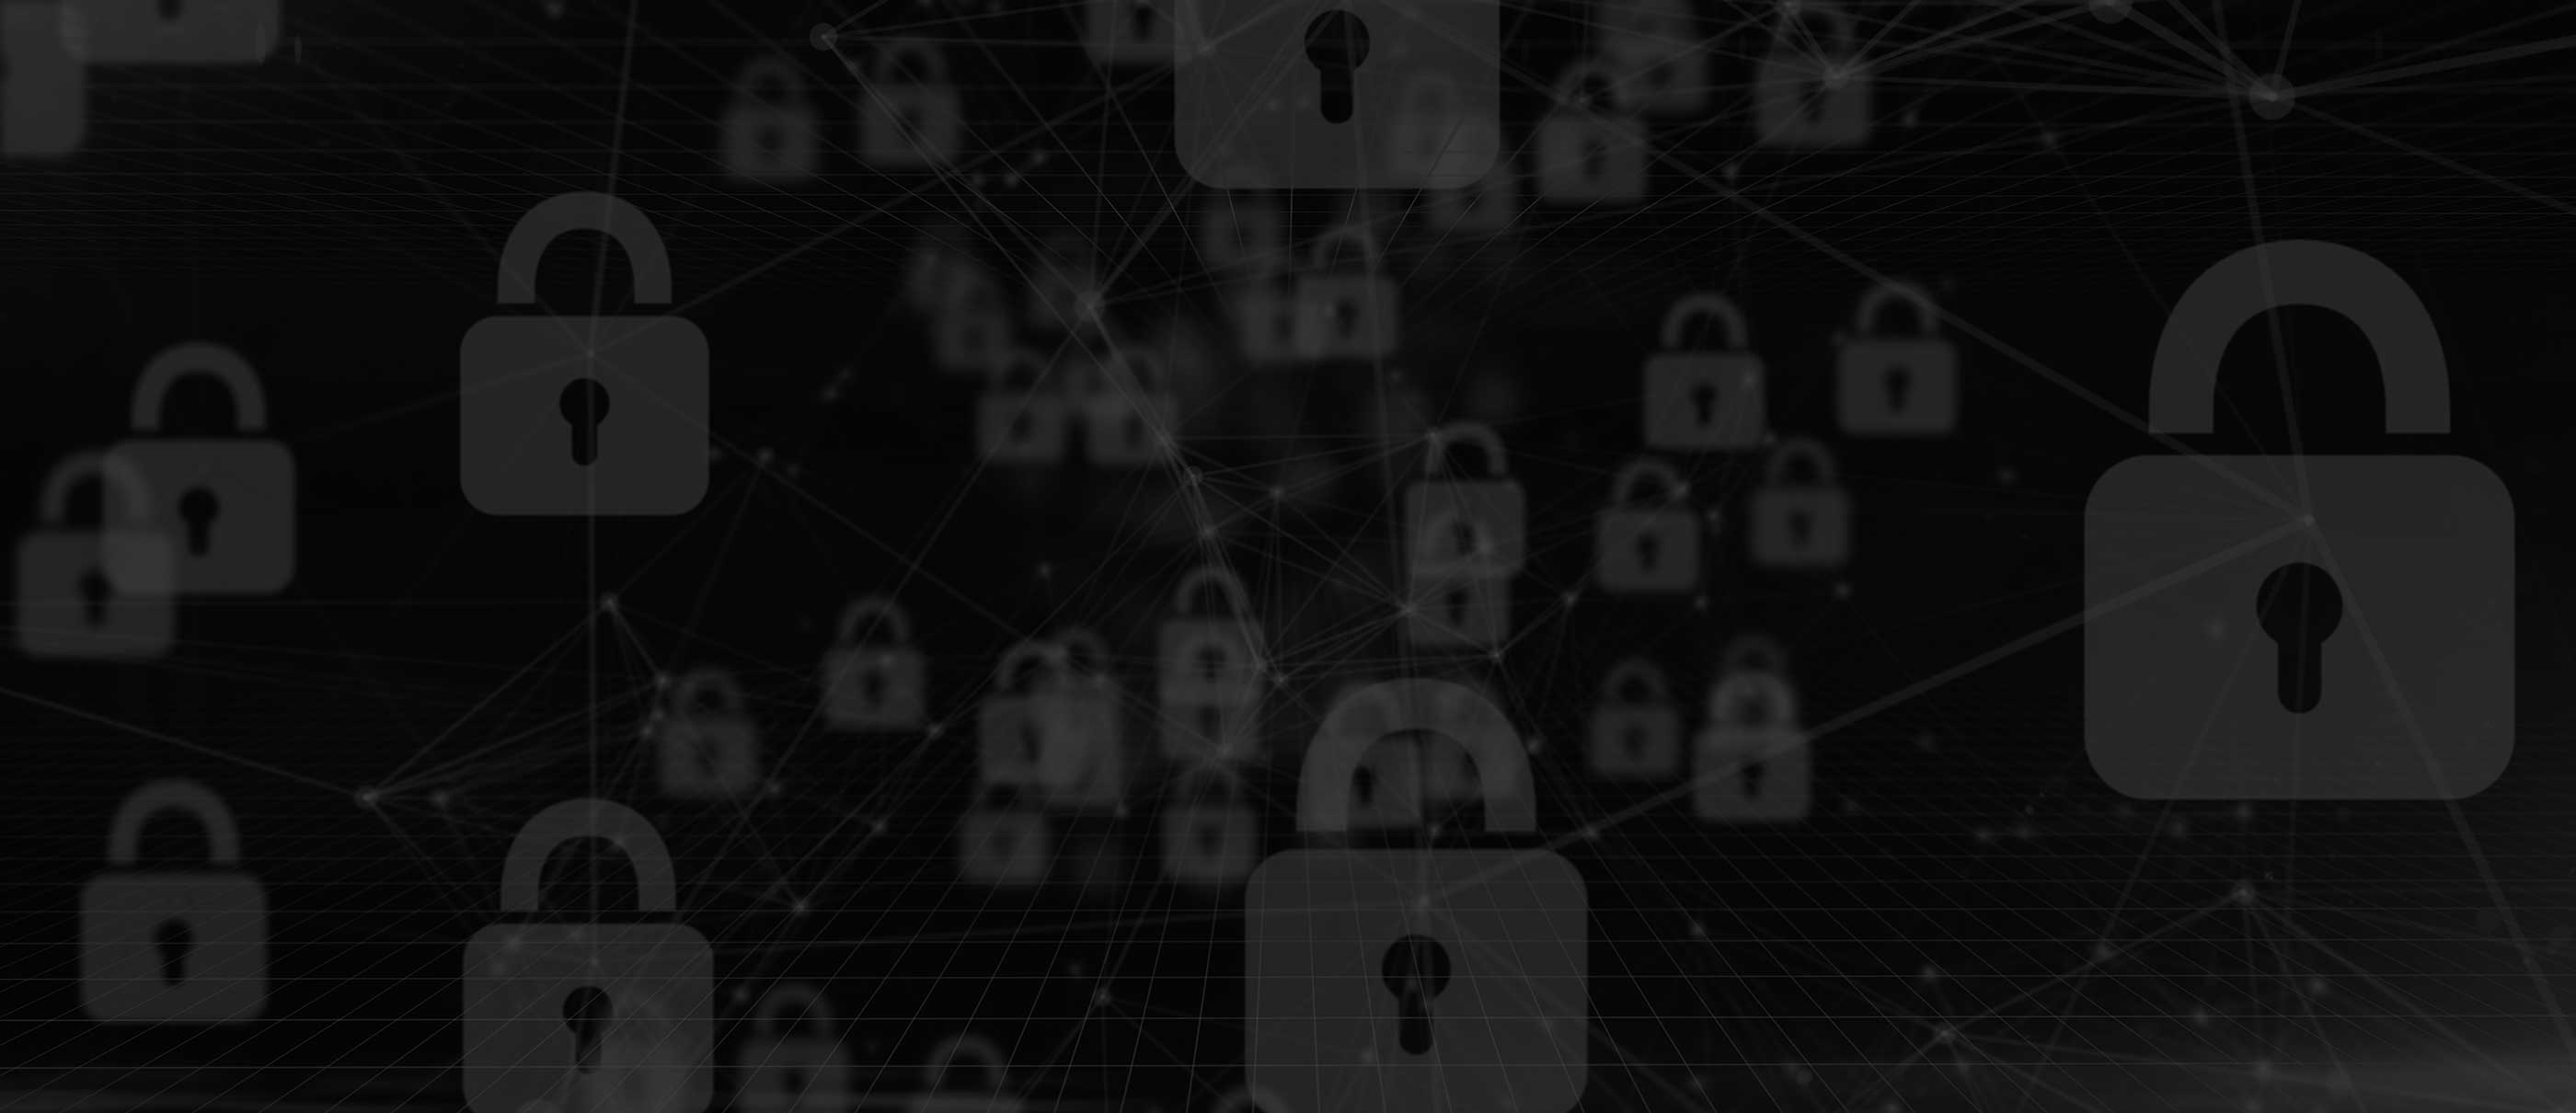 Kaleida: Clash of the Titans: Can GDPR and Blockchain Resolve Their Differences? Banner